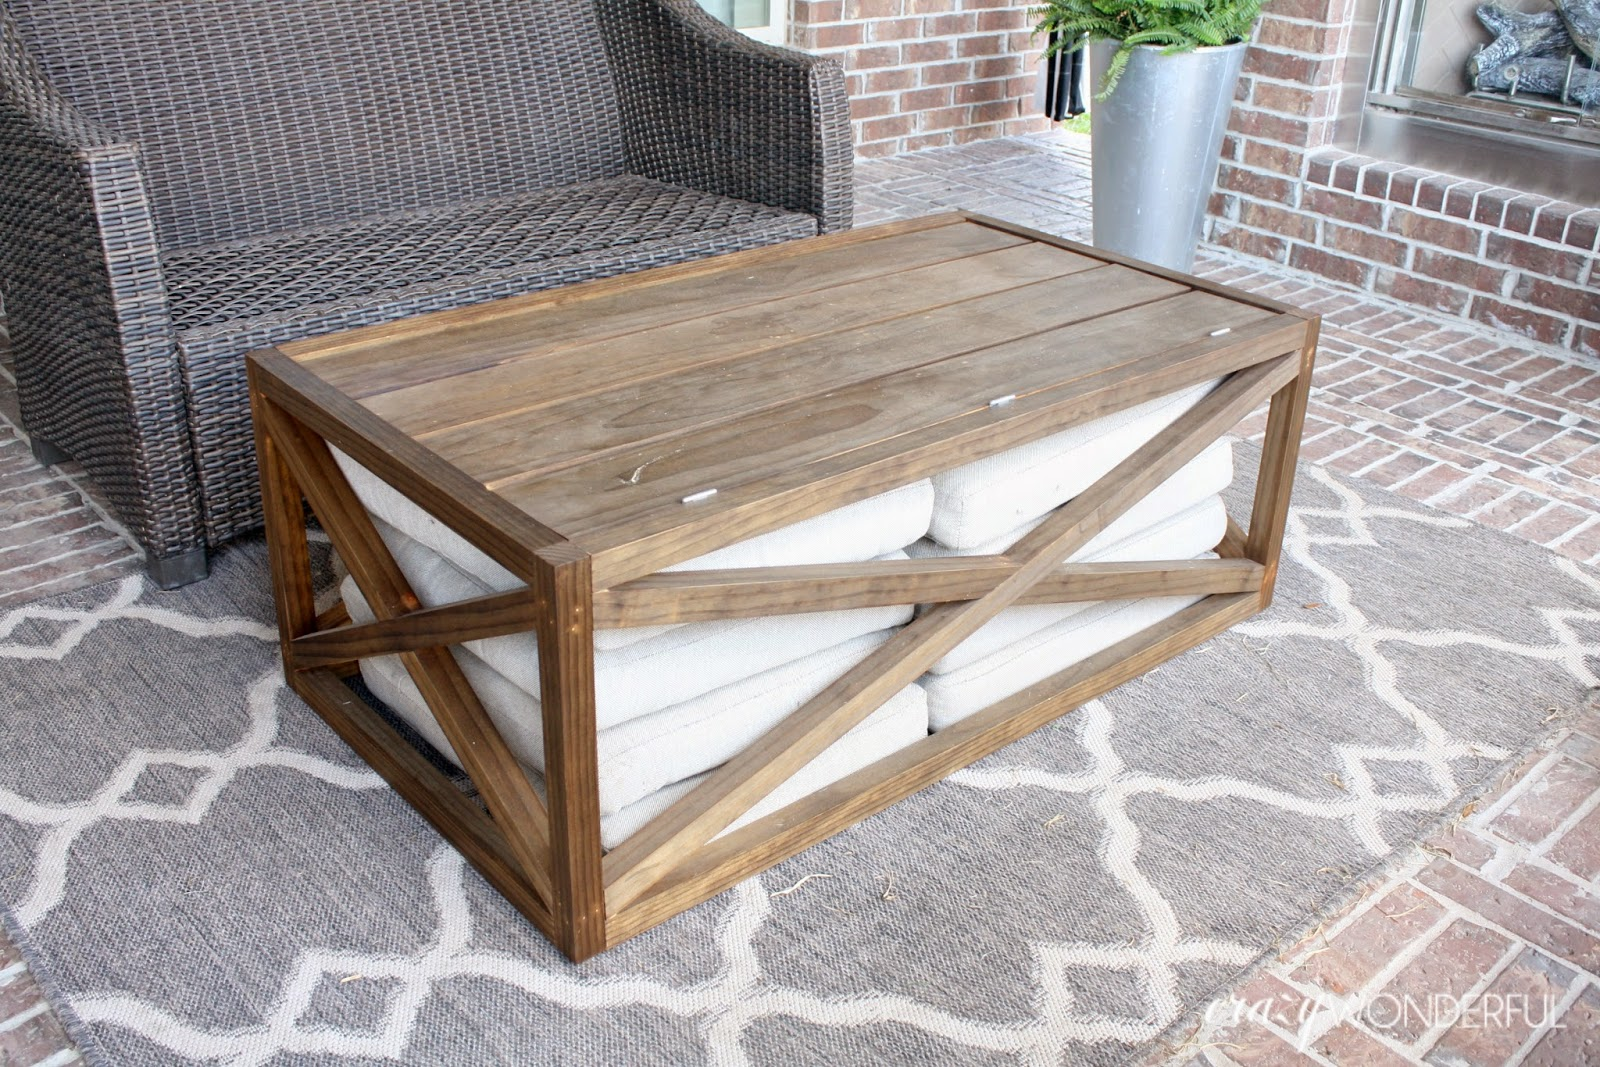 diy outdoor coffee table with storage crazy wonderful side drawer small deck and chairs navy standard height antique low seagrass nautical wall sconces bathroom skinny bedside